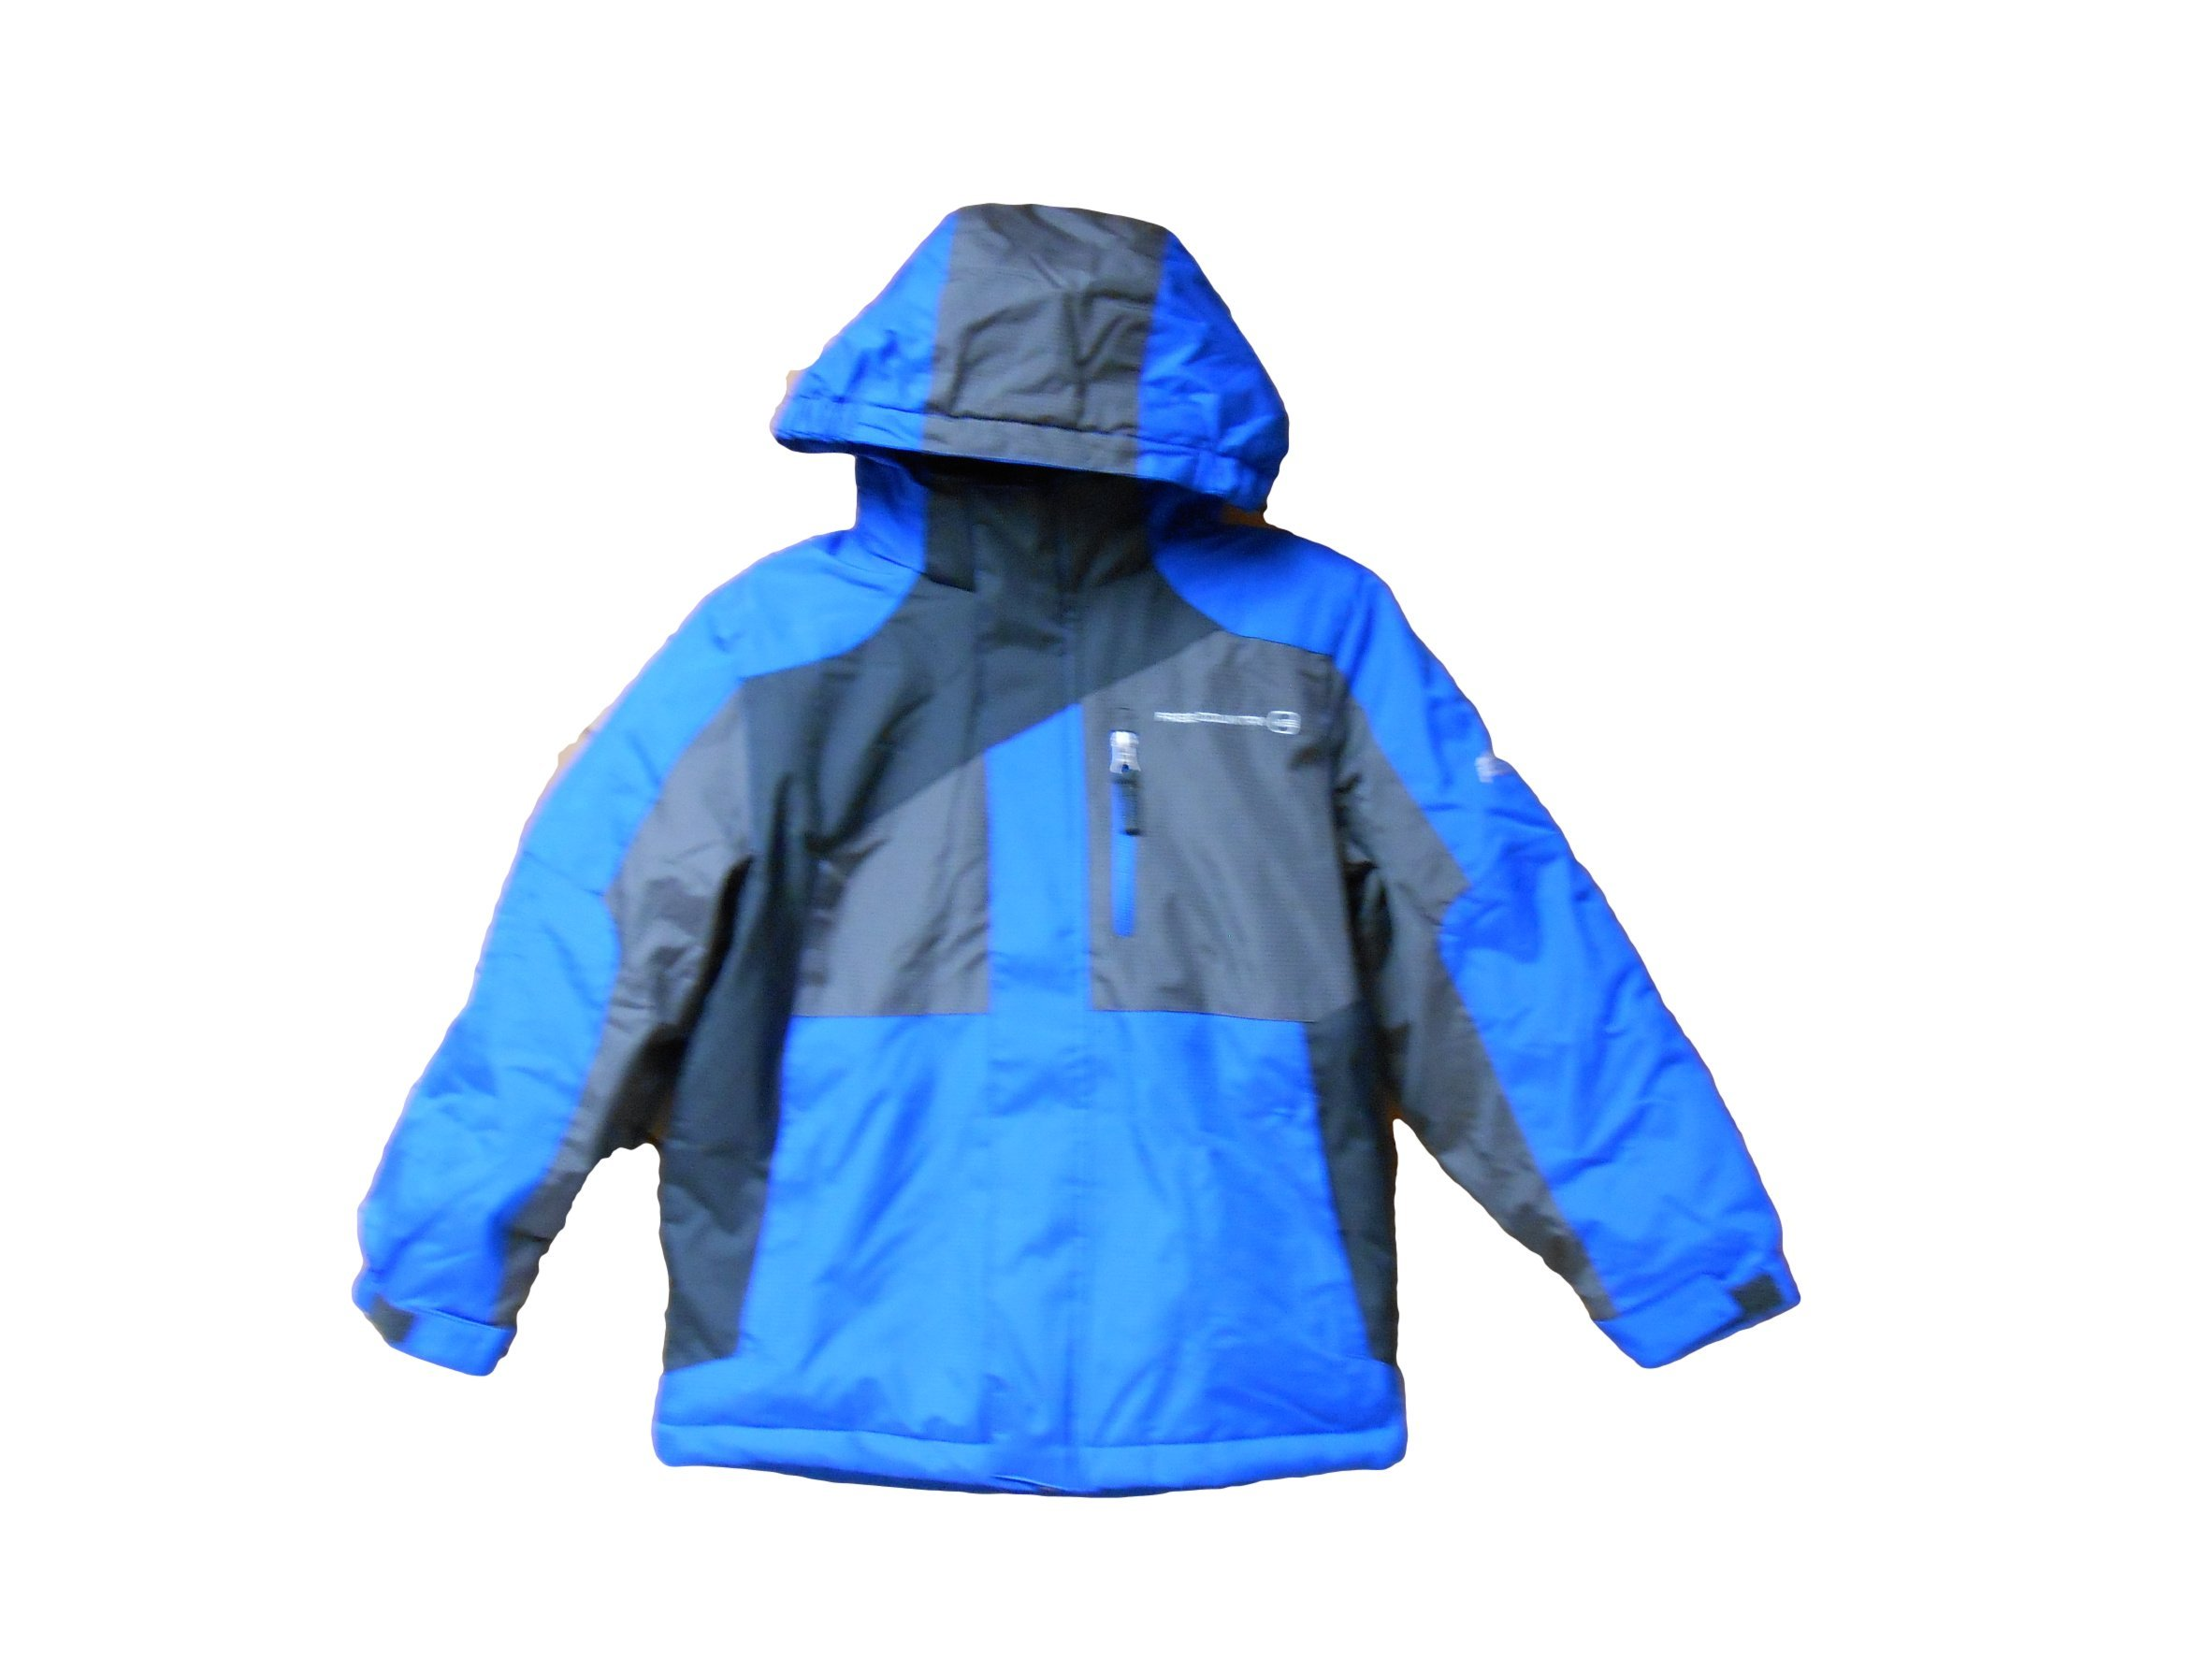 Free Country Fcxtreme Boy's Jackets Small 7/8 Really Royal/grey by Free Country